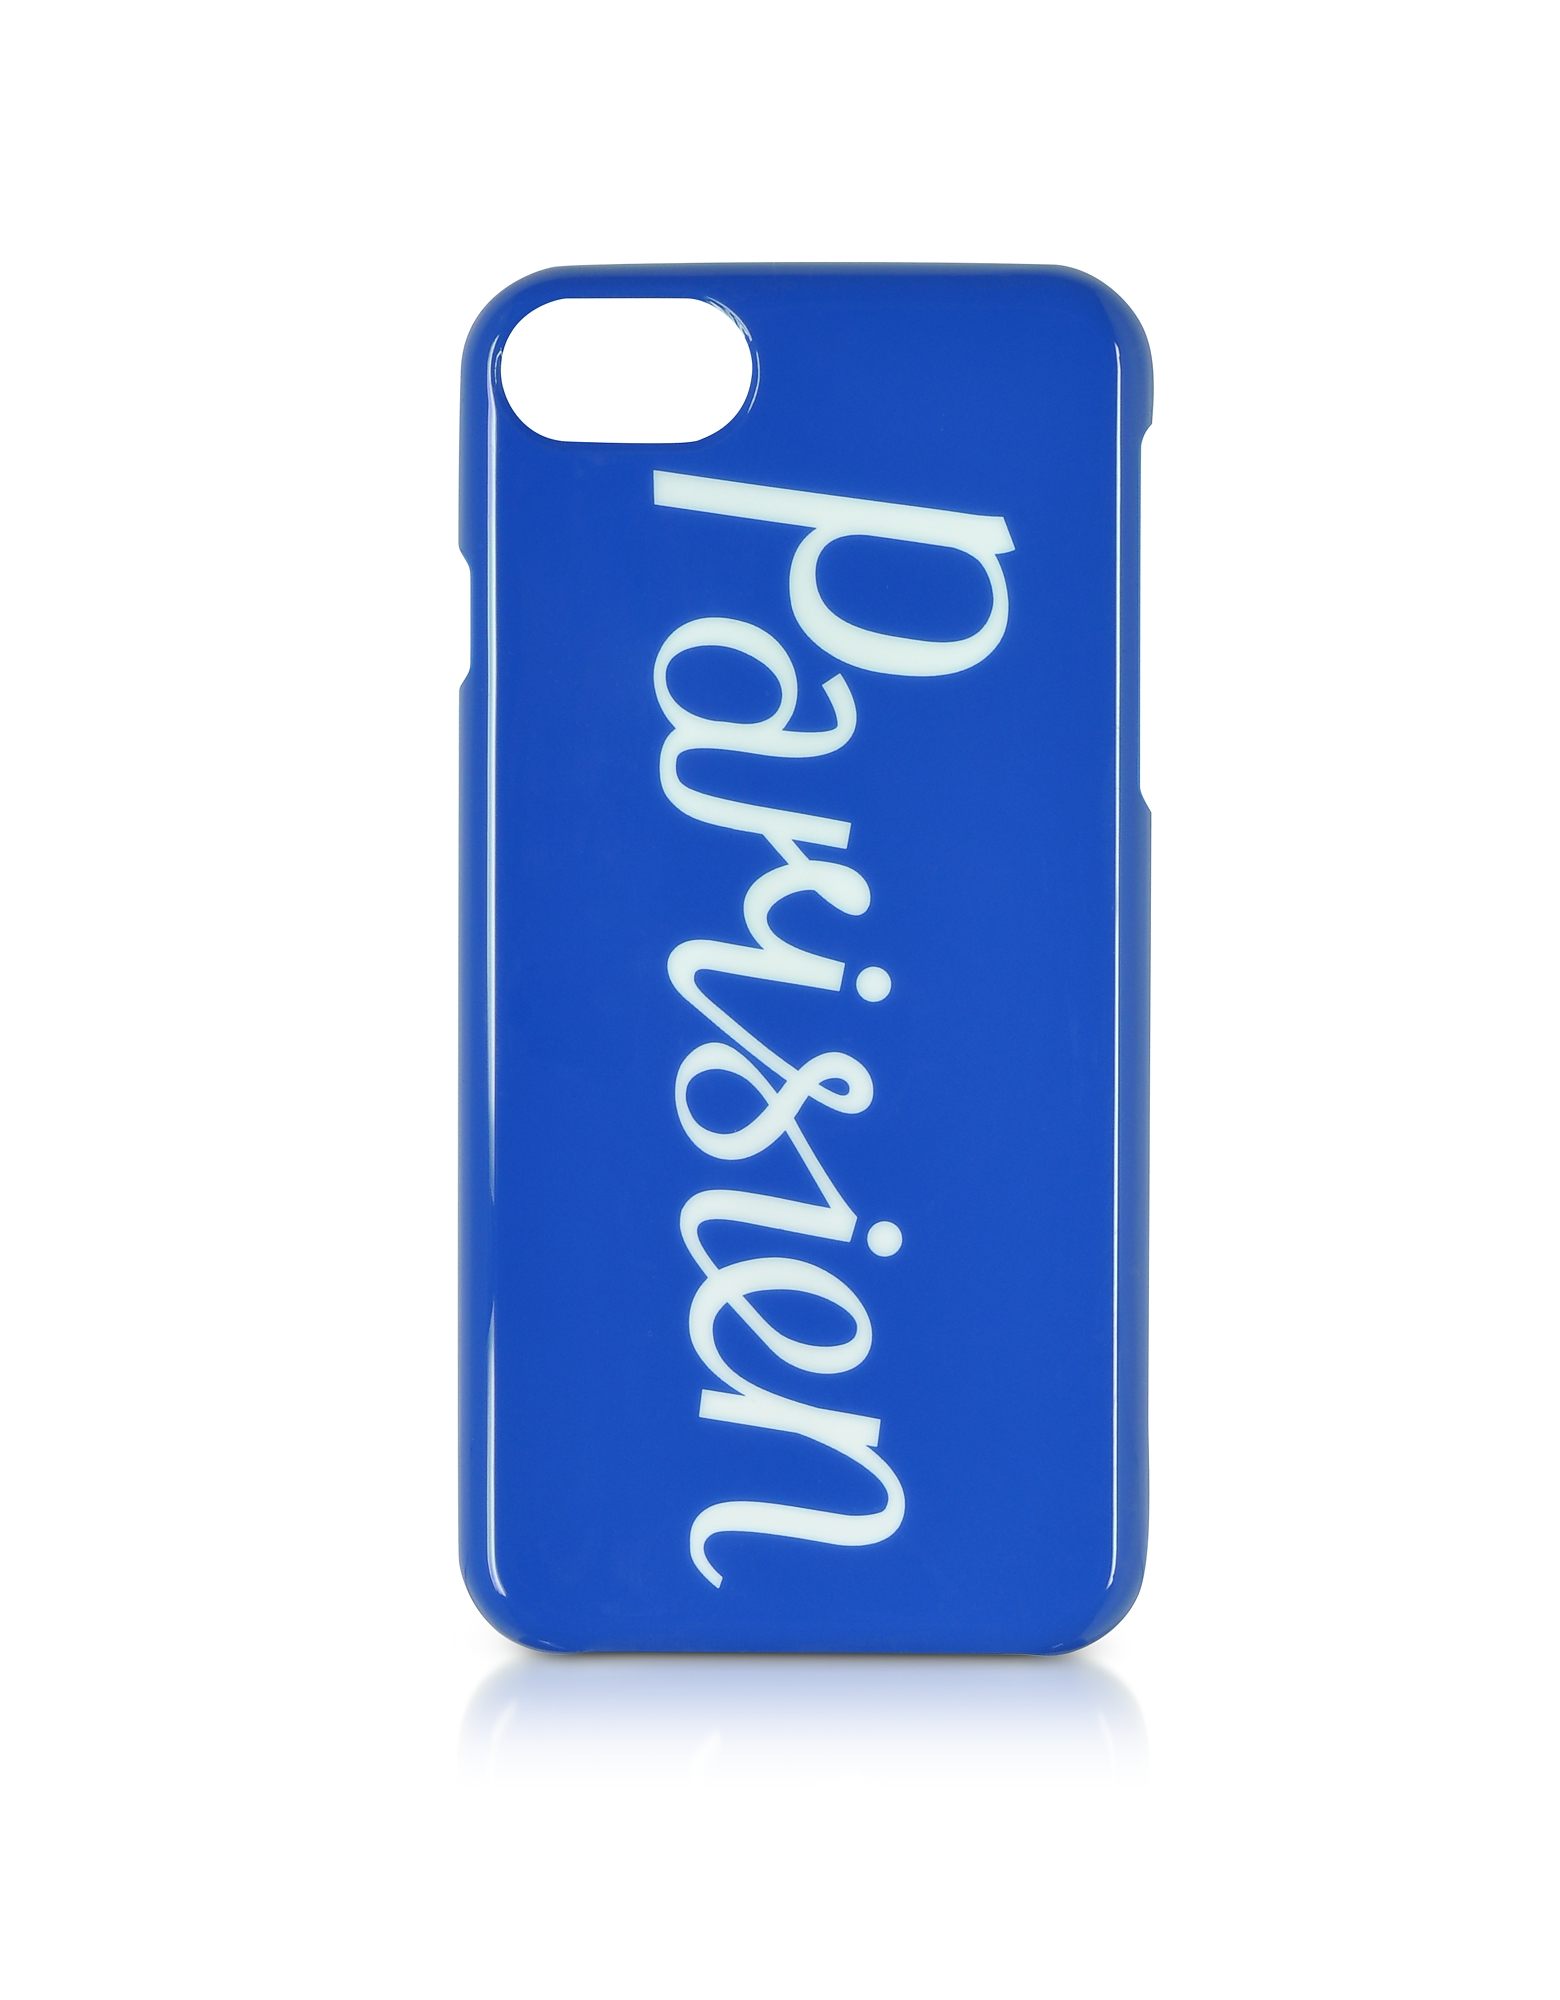 Maison Kitsuné Designer Handbags, Parisien Royal Blue Iphone 7 Case